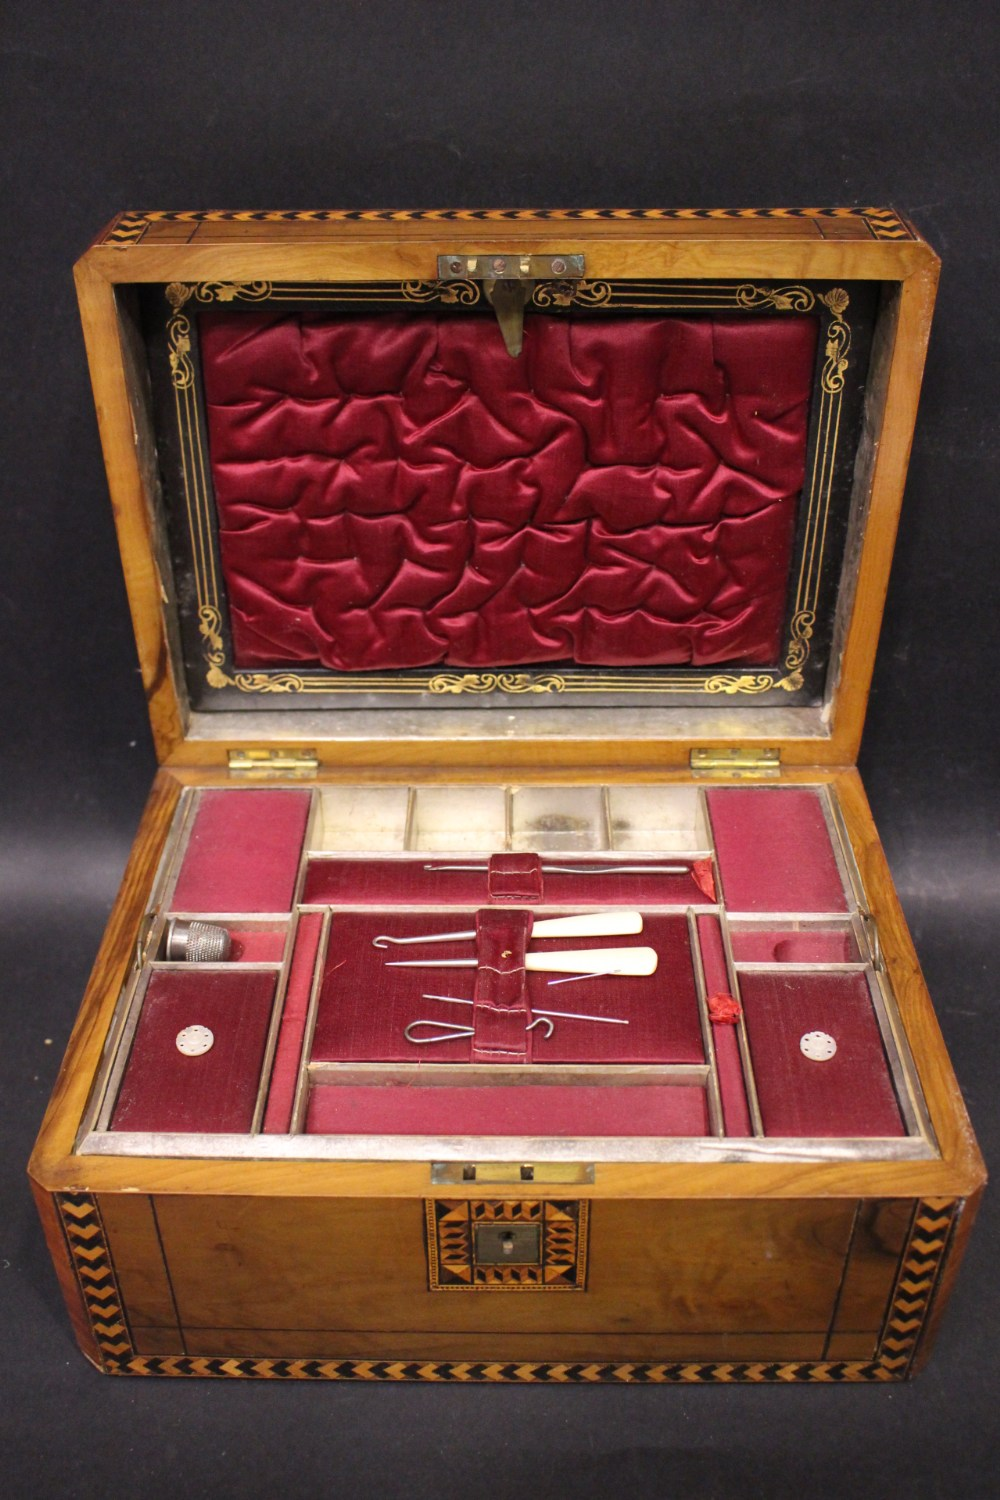 Lot 206 - A LATE 19TH CENTURY VERY FINE 'TURNBRDIGE WARE' WORK BOX, with marquetry inlaid details, canted